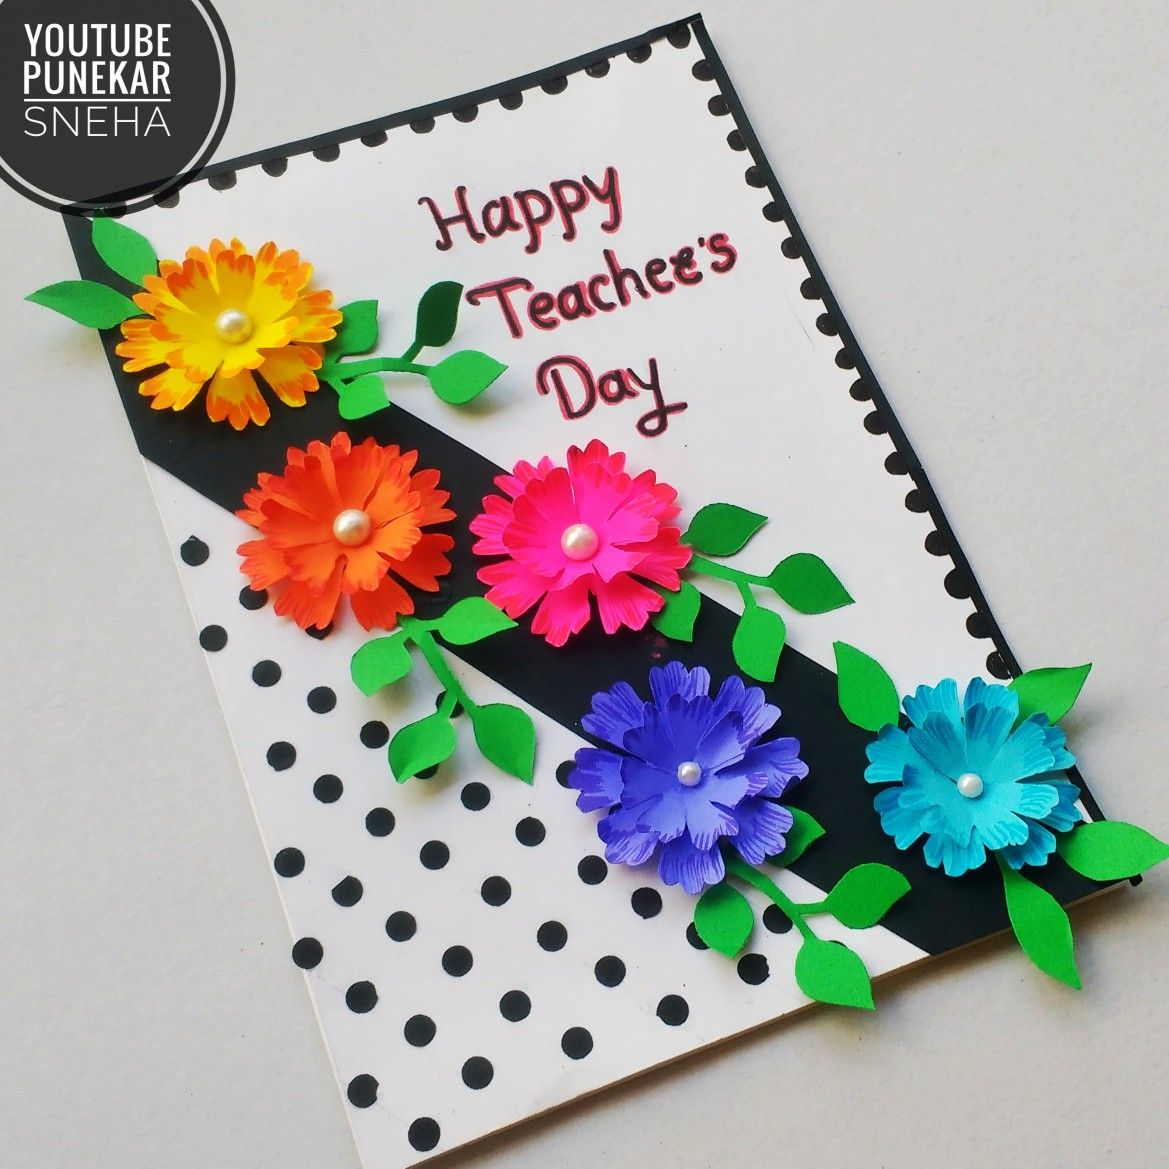 Teacher S Day Card Making How To Make Easy Teachers Day Card Making By Punekar Sneha Happy Teachers Day Card Teacher Birthday Card Card Making Birthday